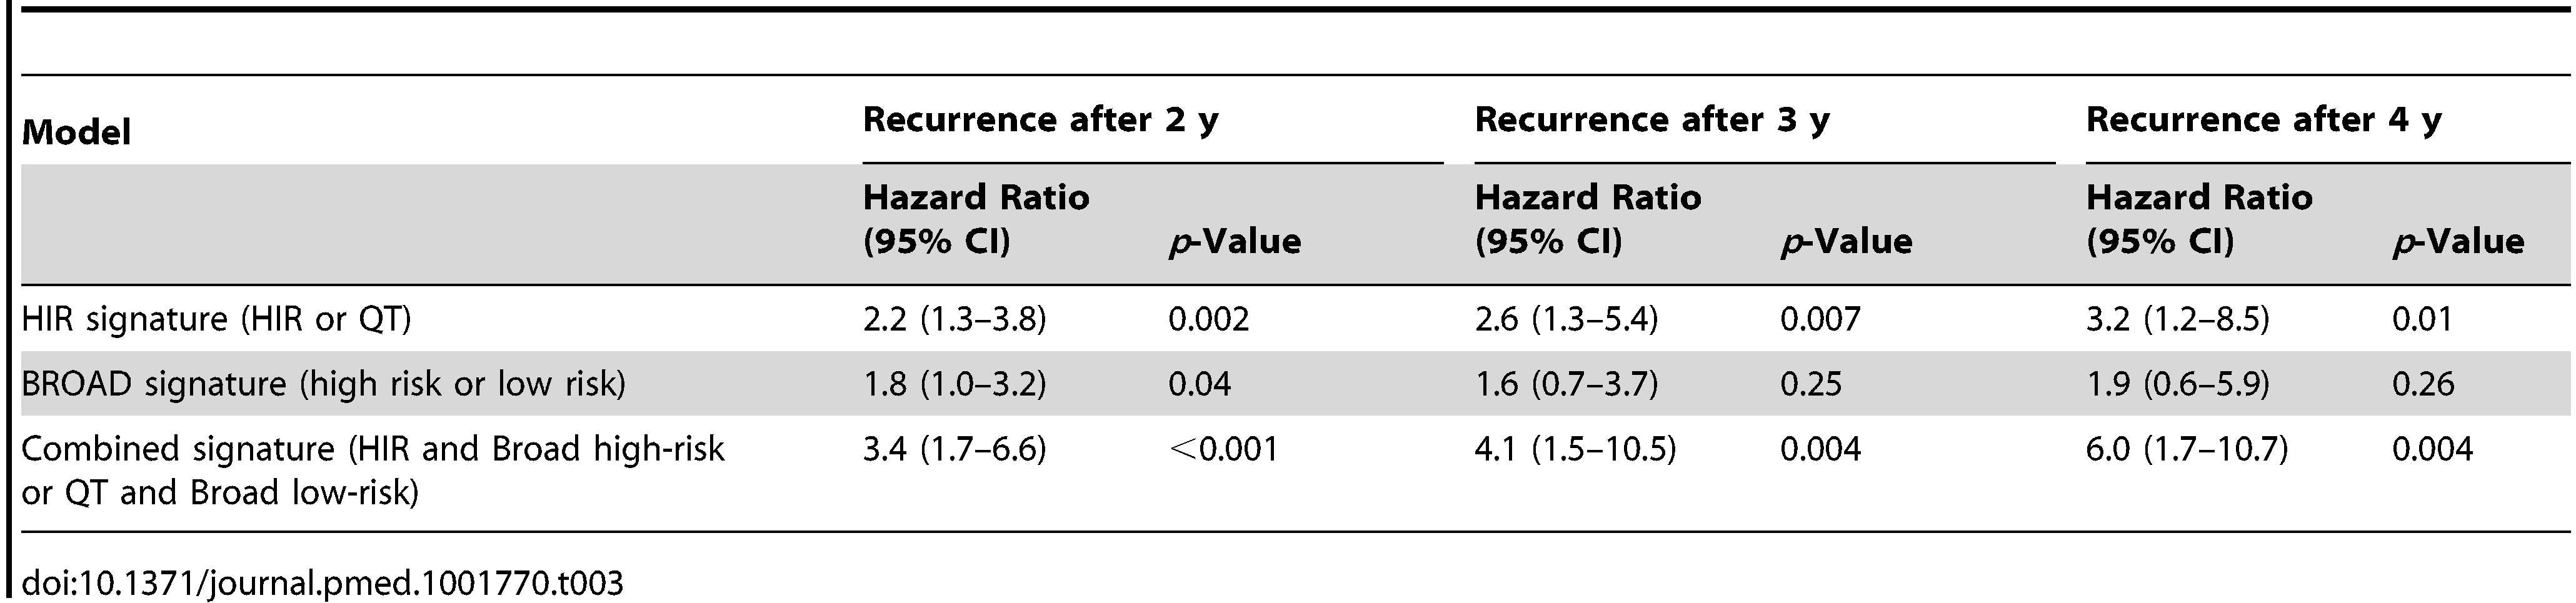 Hazard ratios of high-risk groups in three prognostic models.